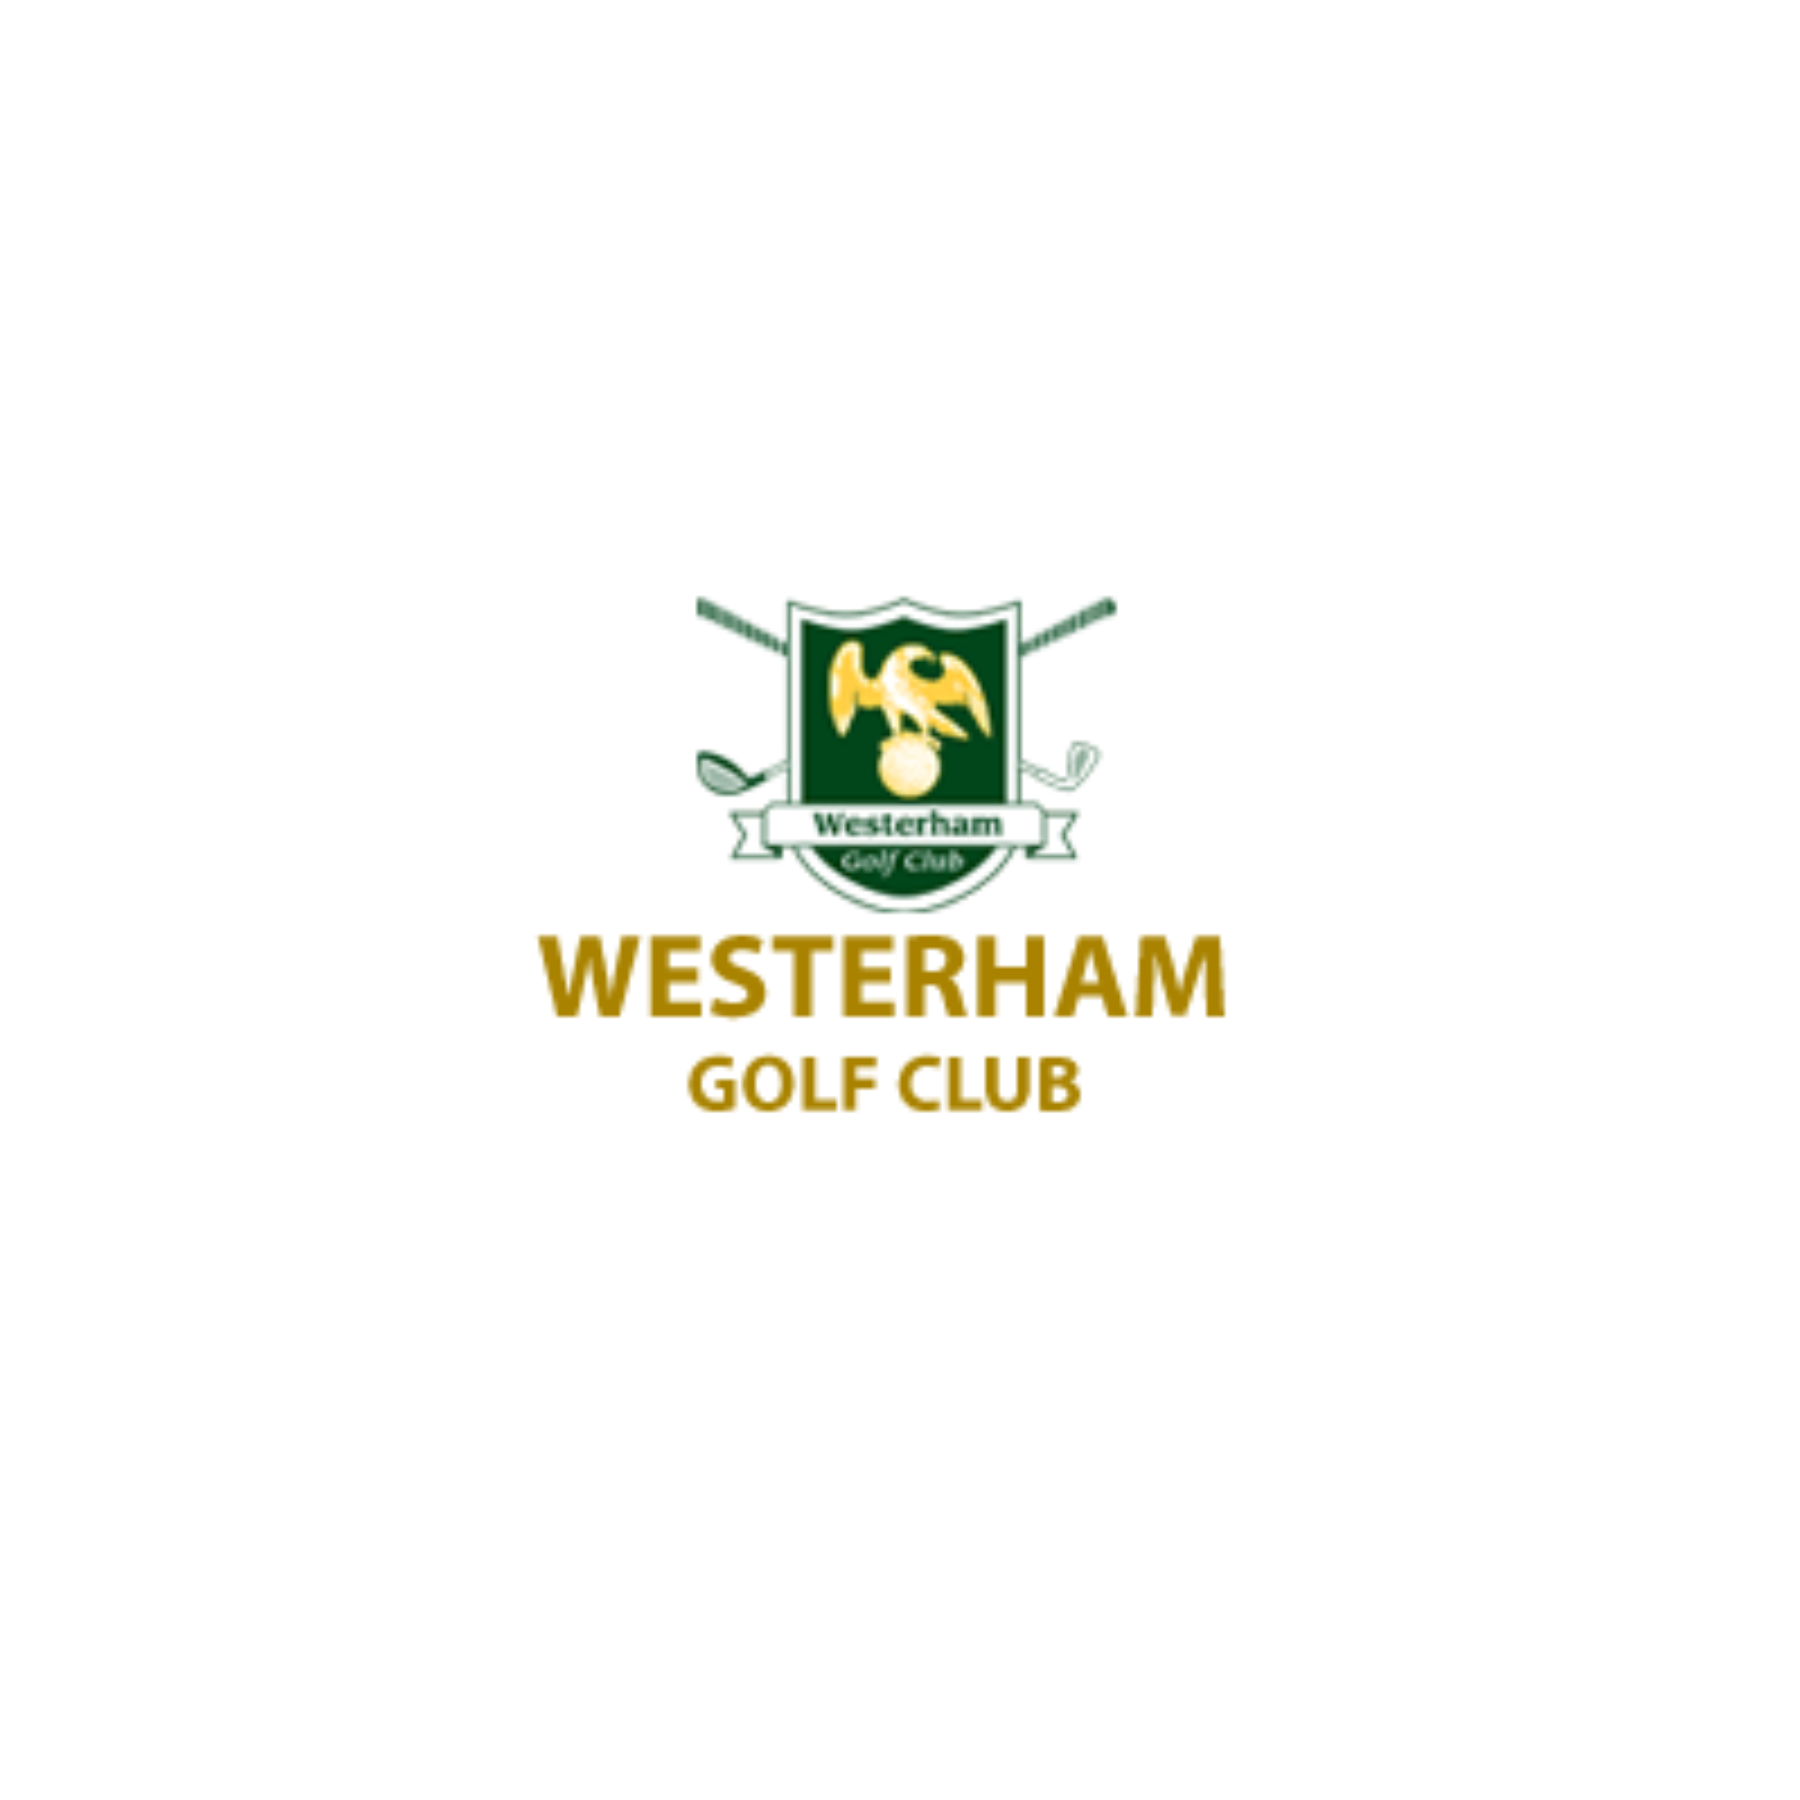 Westerham Golf Club, Kent - Situated in a small & quiet Kentish Town, this wedding venue is perfect for larger wedding parties. With stunning views across the course and of the valance school on the hill top, this is a great location for any wedding.